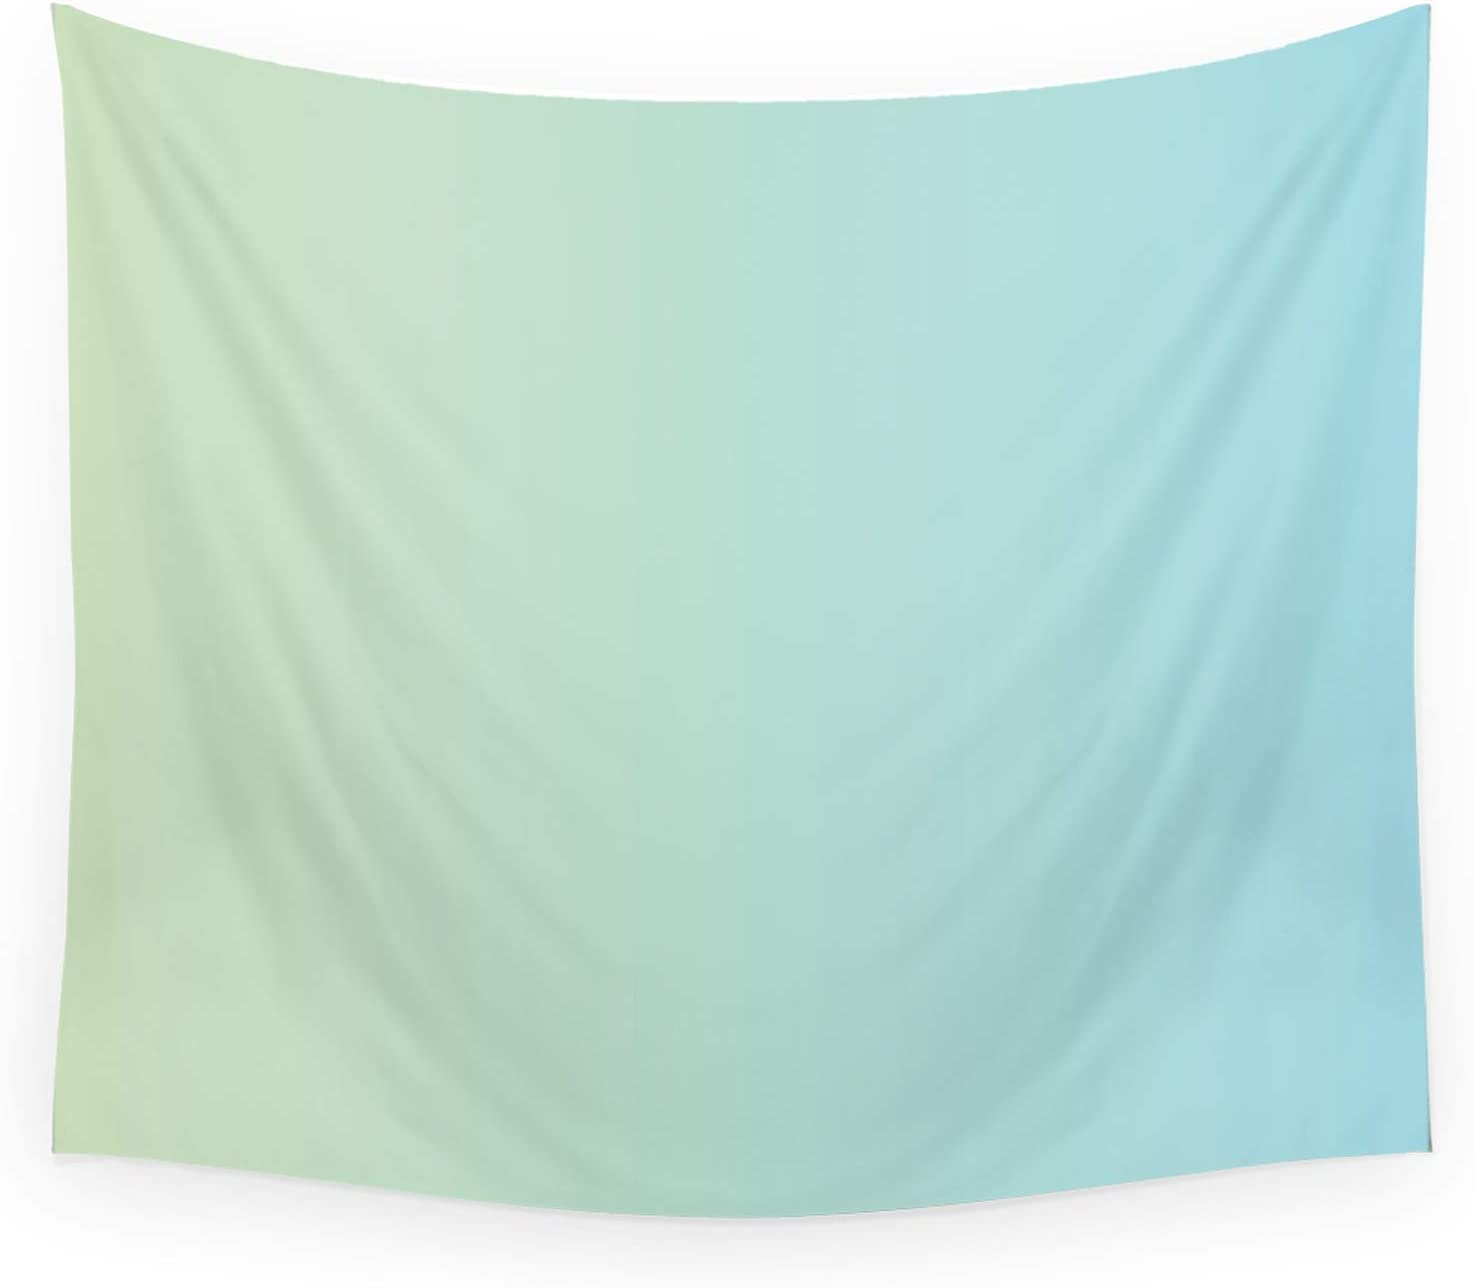 Society6 Turquoise Green 70% OFF Outlet Blue Gradient by Wall Luxe on Ha Simple Cheap mail order sales